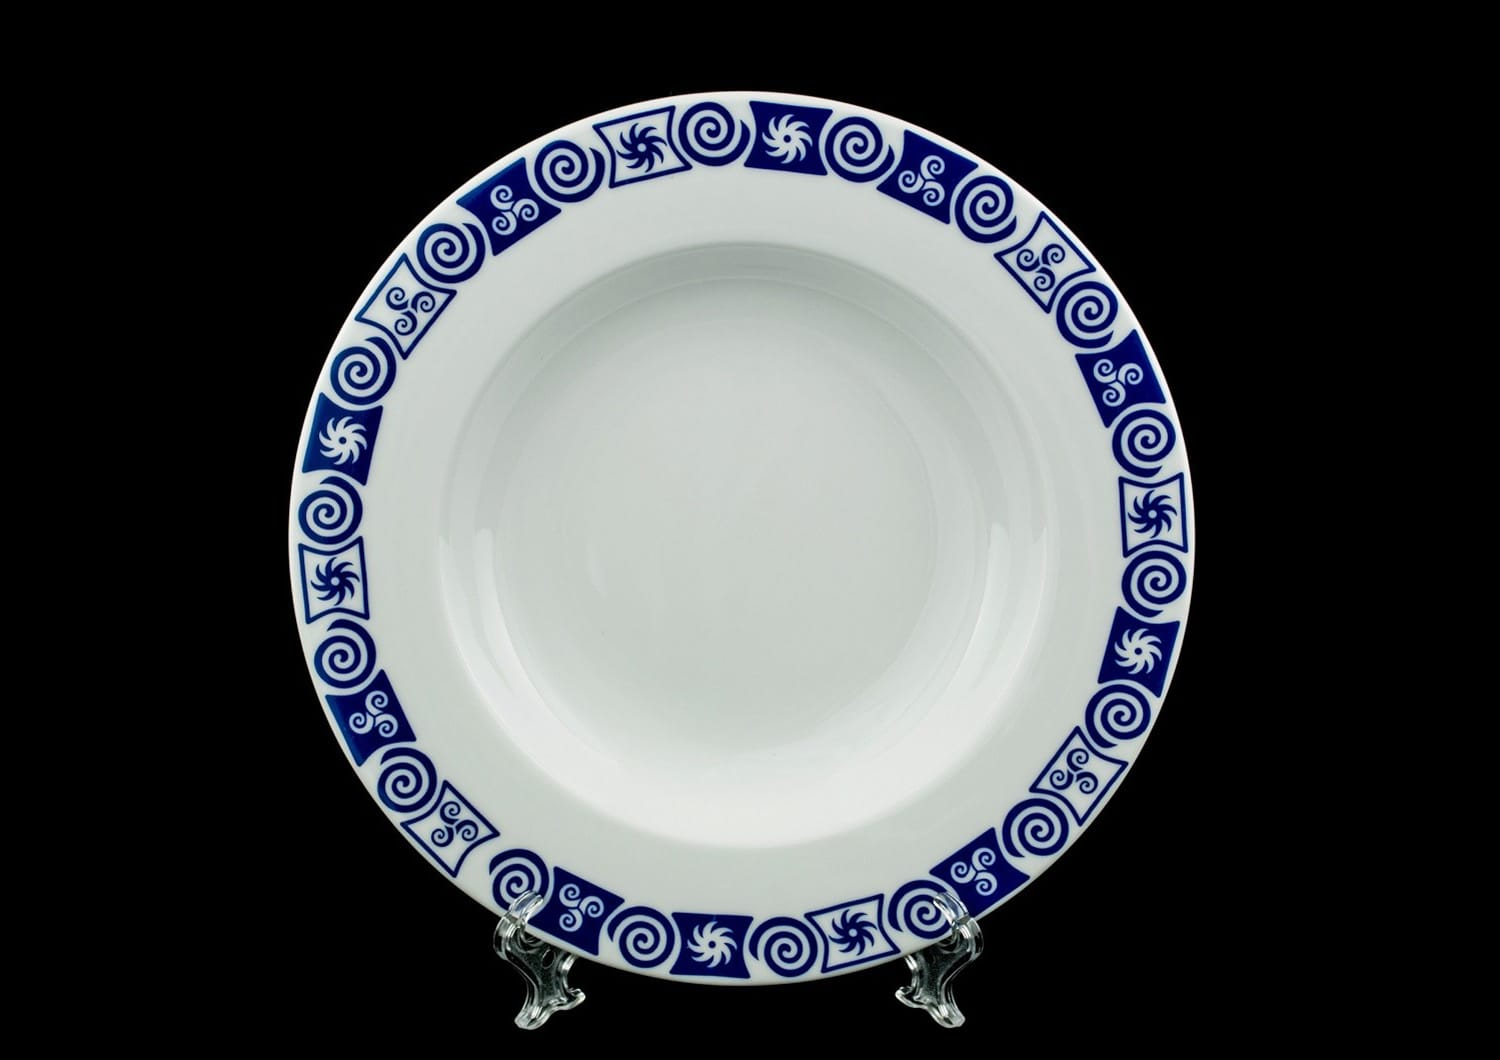 Coimbra deep plate. Celta collection.